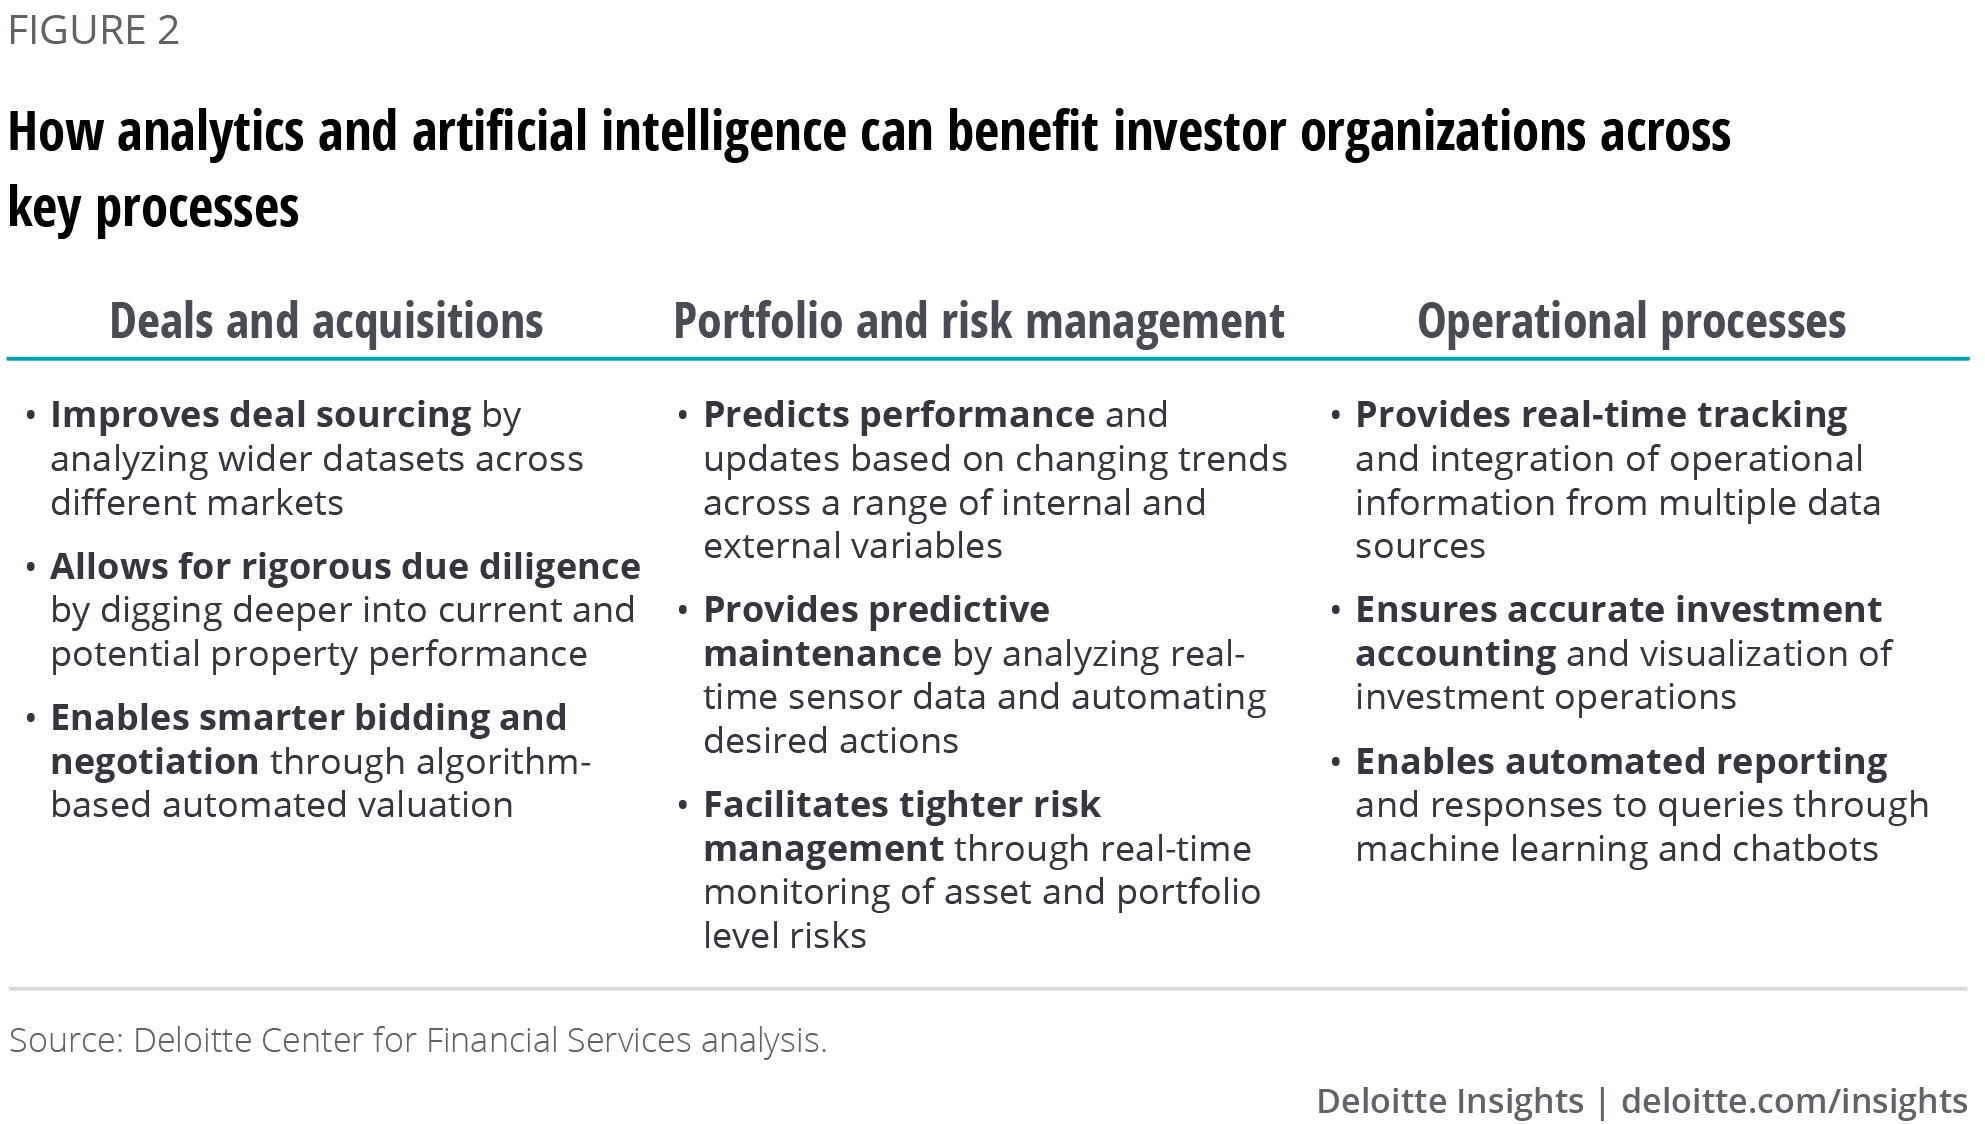 How analytics and artificial intelligence can benefit investor organizations across key processes